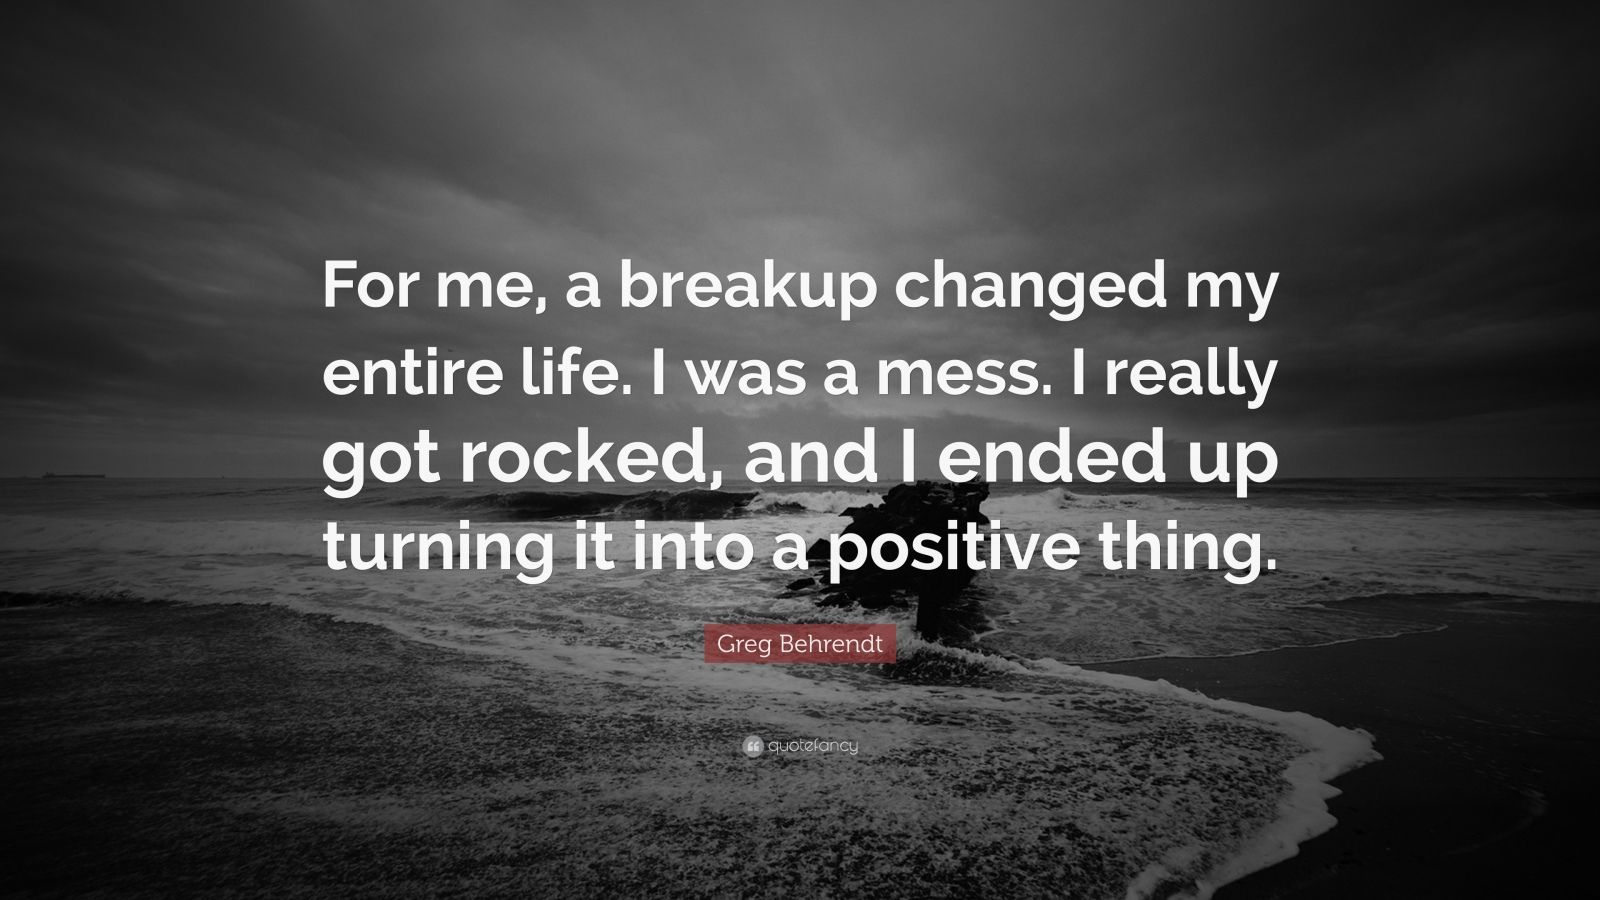 "Breakup Quotes: ""For me, a breakup changed my entire life. I was a mess. I really got rocked, and I ended up turning it into a positive thing."" — Greg Behrendt"